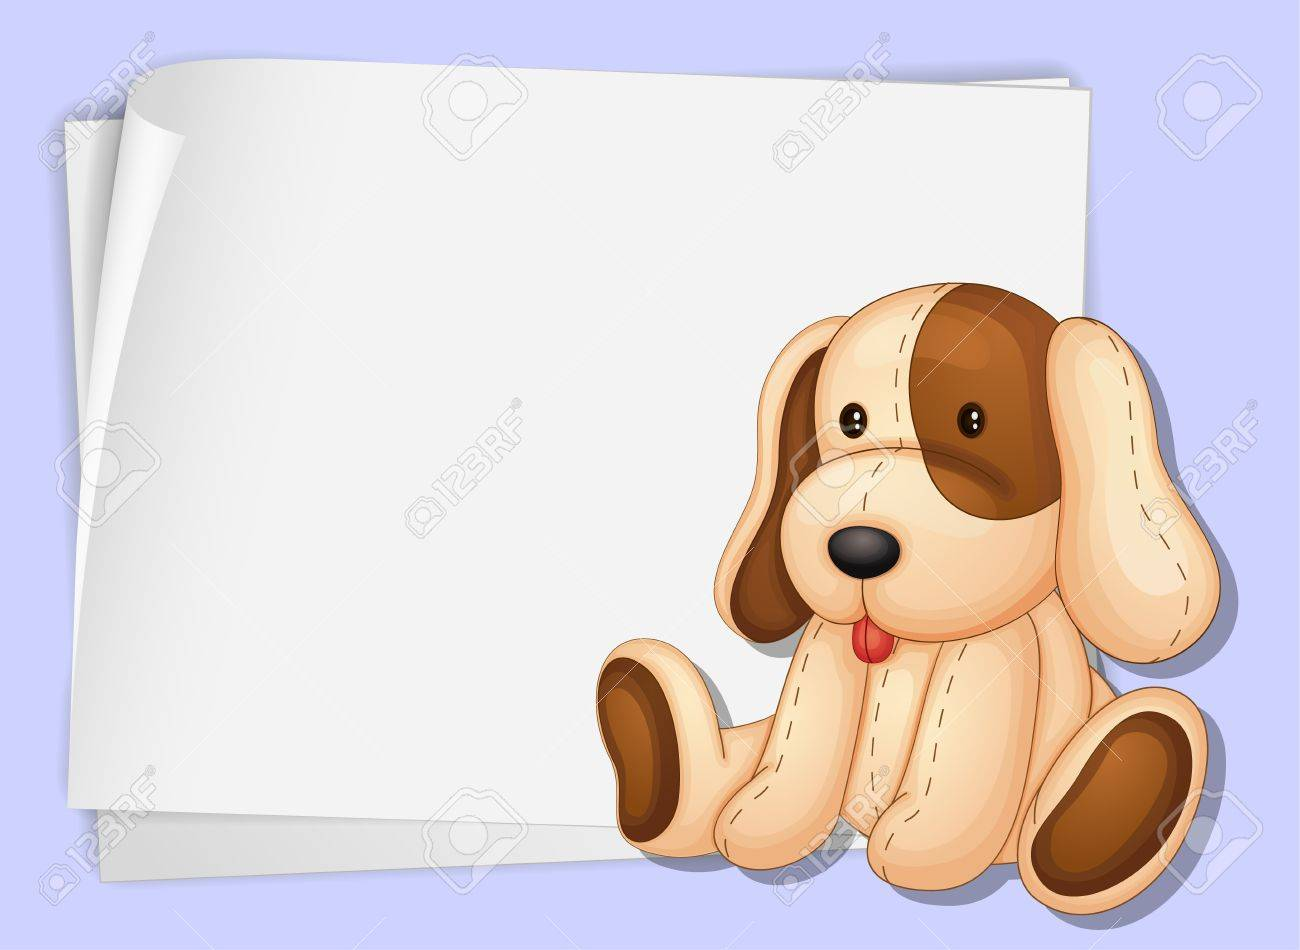 Illustration of a soft dog on paper Stock Vector - 13667444